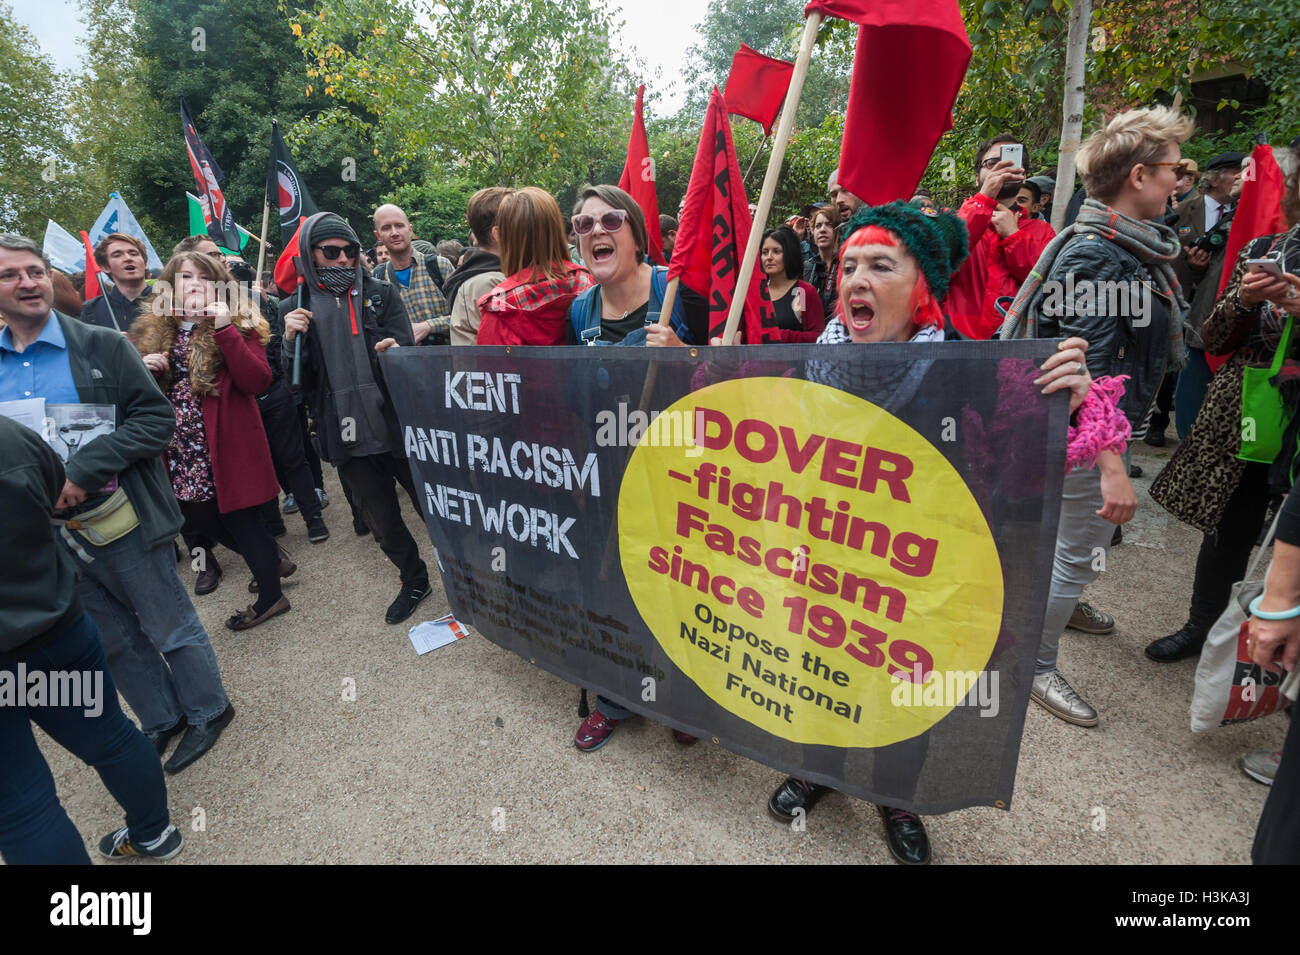 London, UK. 9th October 2016. Kent Anti Racism Network banner at the rally in front of the mural celebrating the - Stock Image